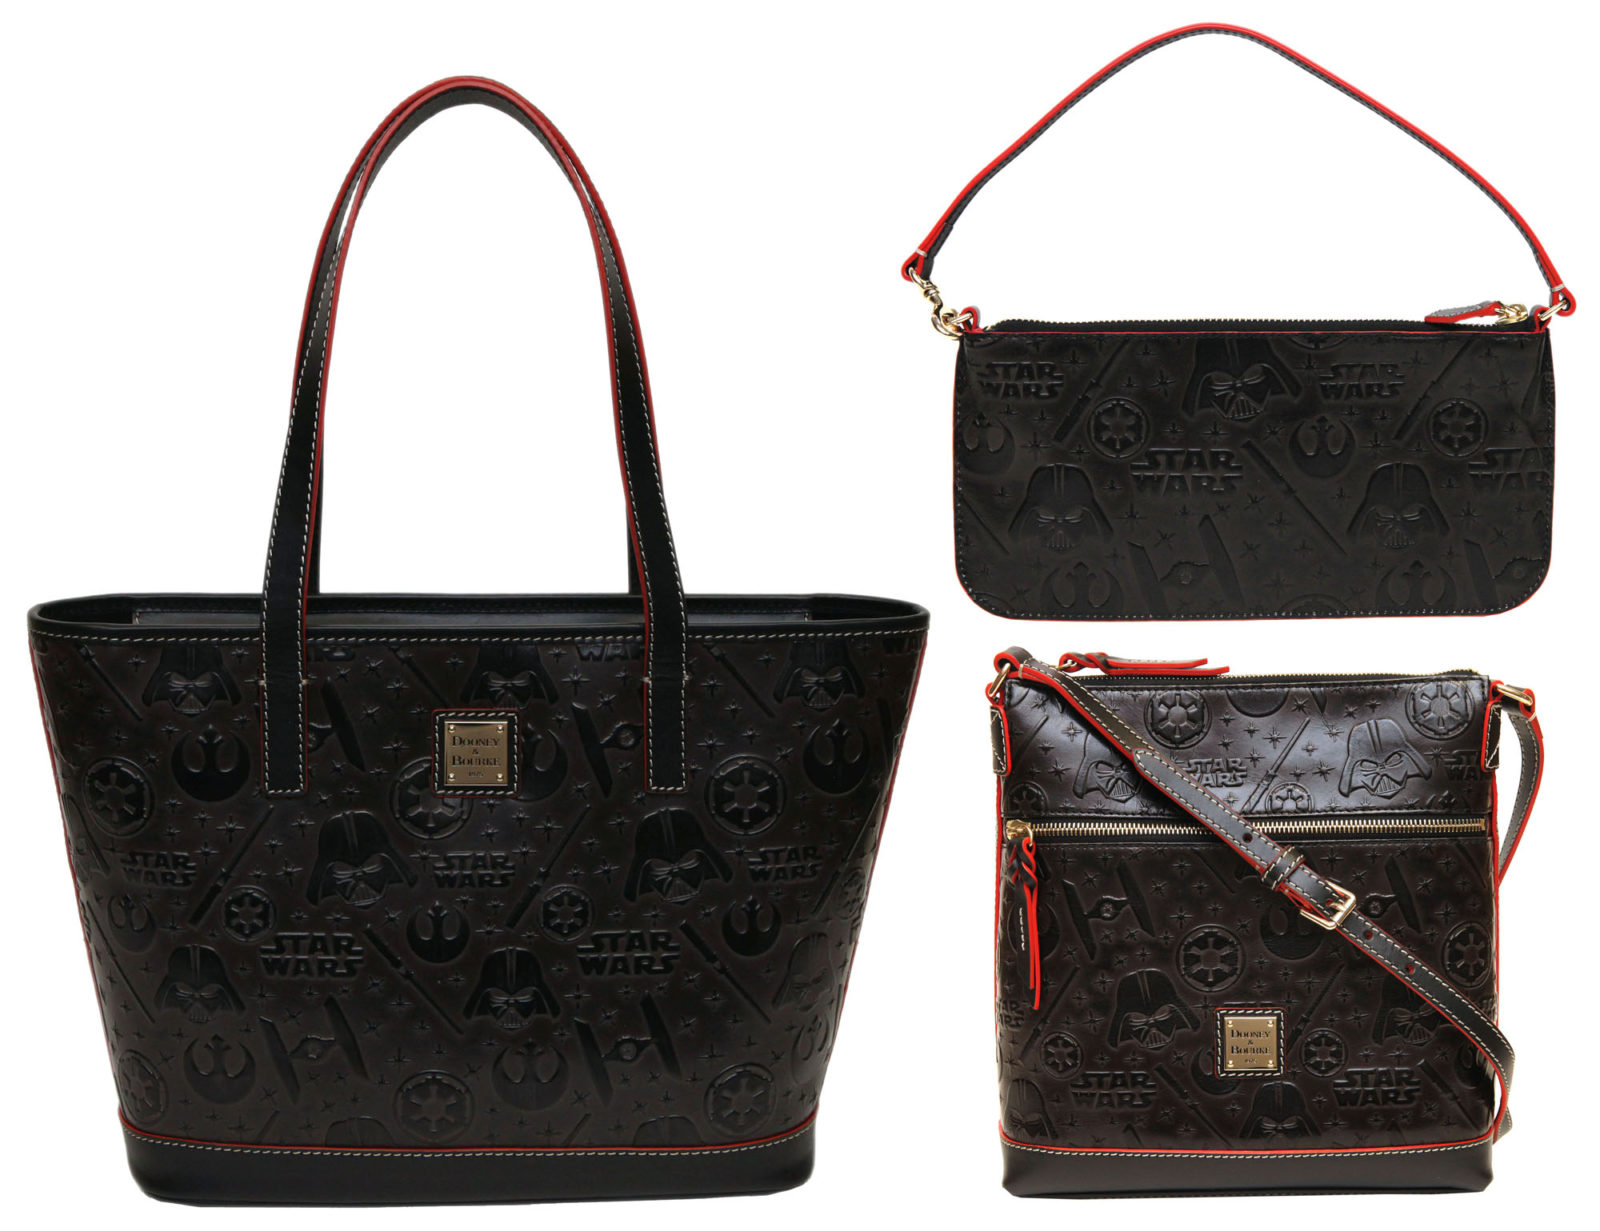 New Dooney & Bourke x Star Wars